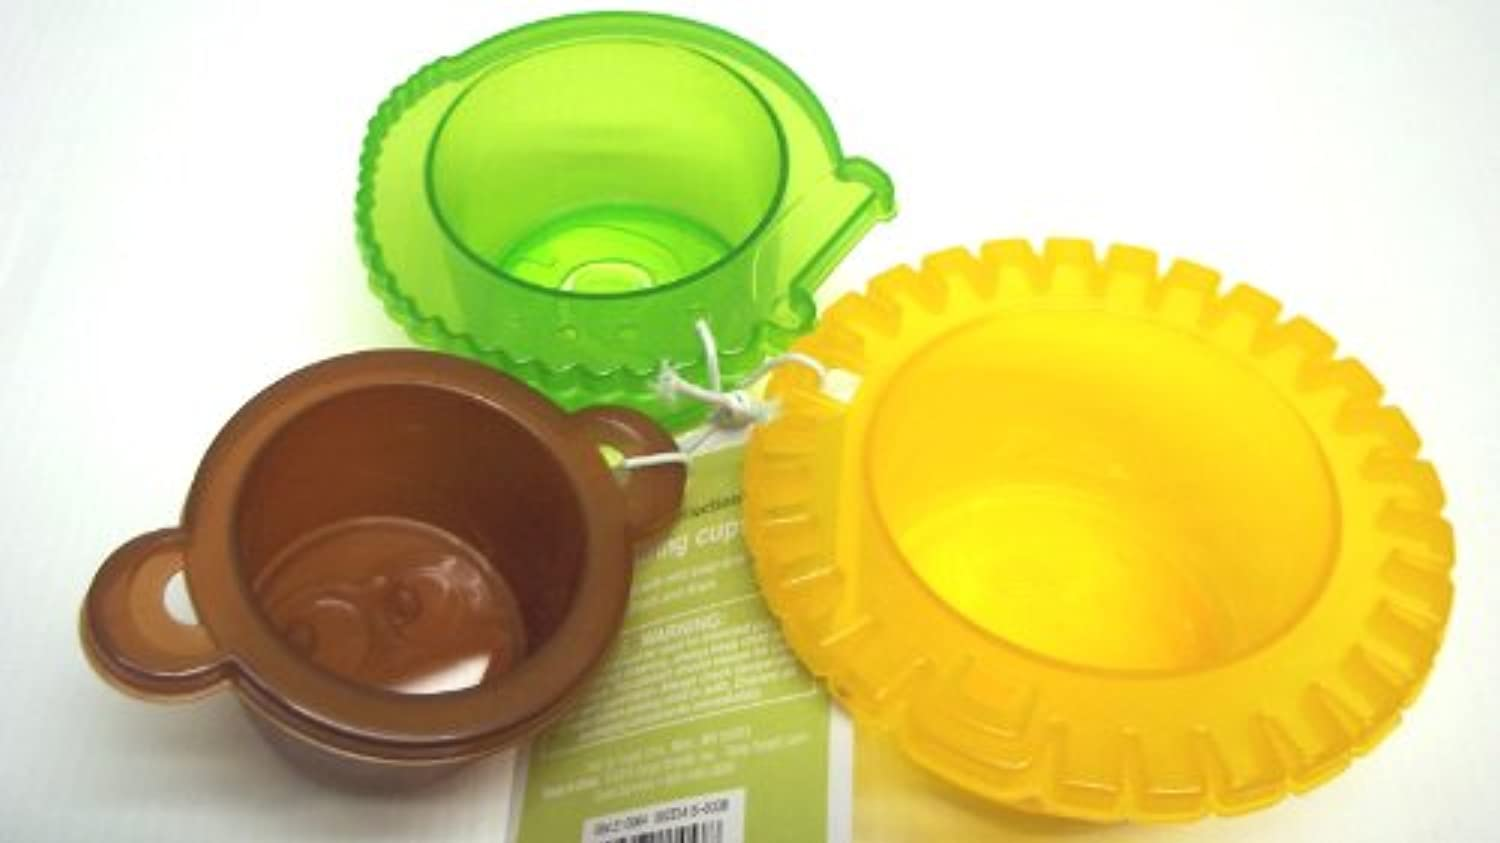 Jungle Collection pouring cups by Circo Baby